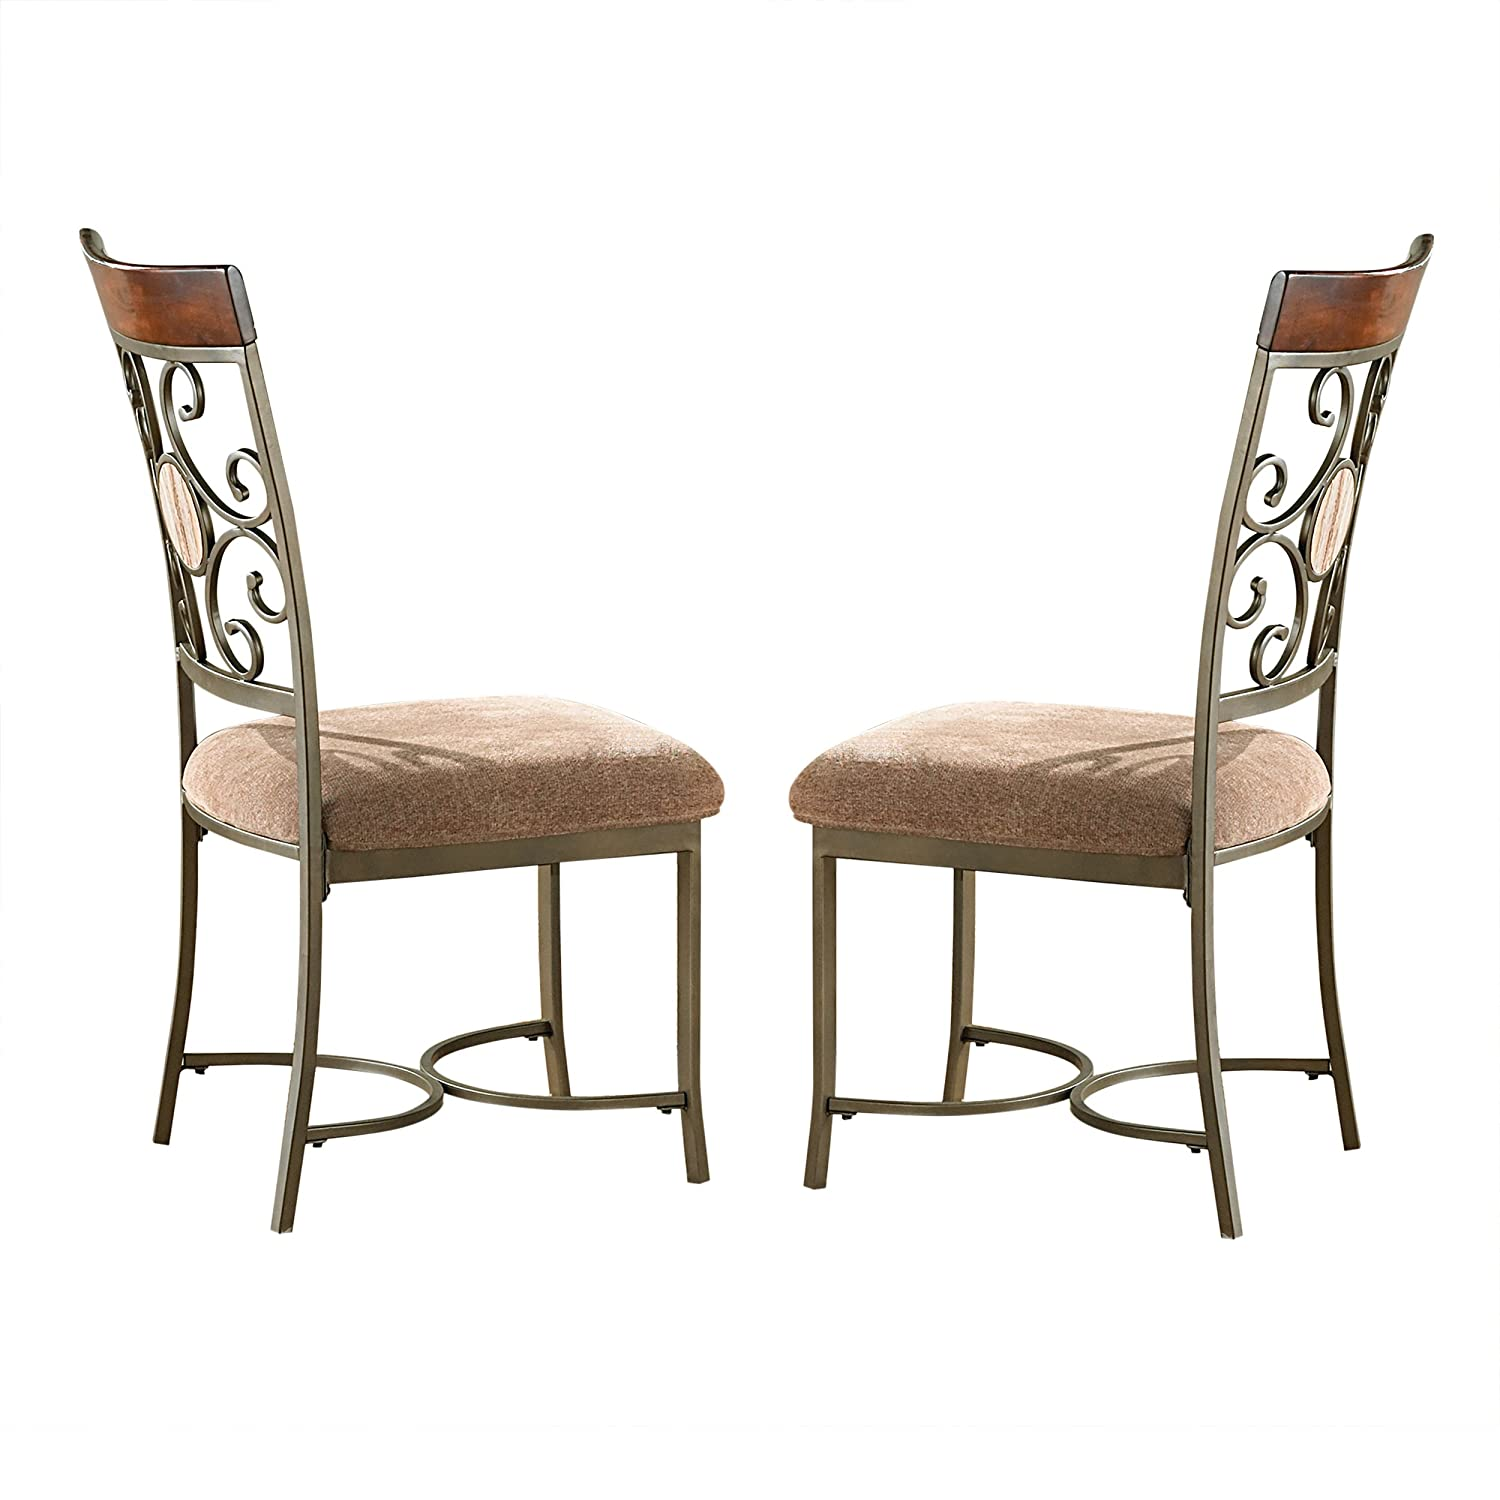 Steve Silver Company Thompson Side Chairs Set of 2 , 19 W x 23 D x 40 H